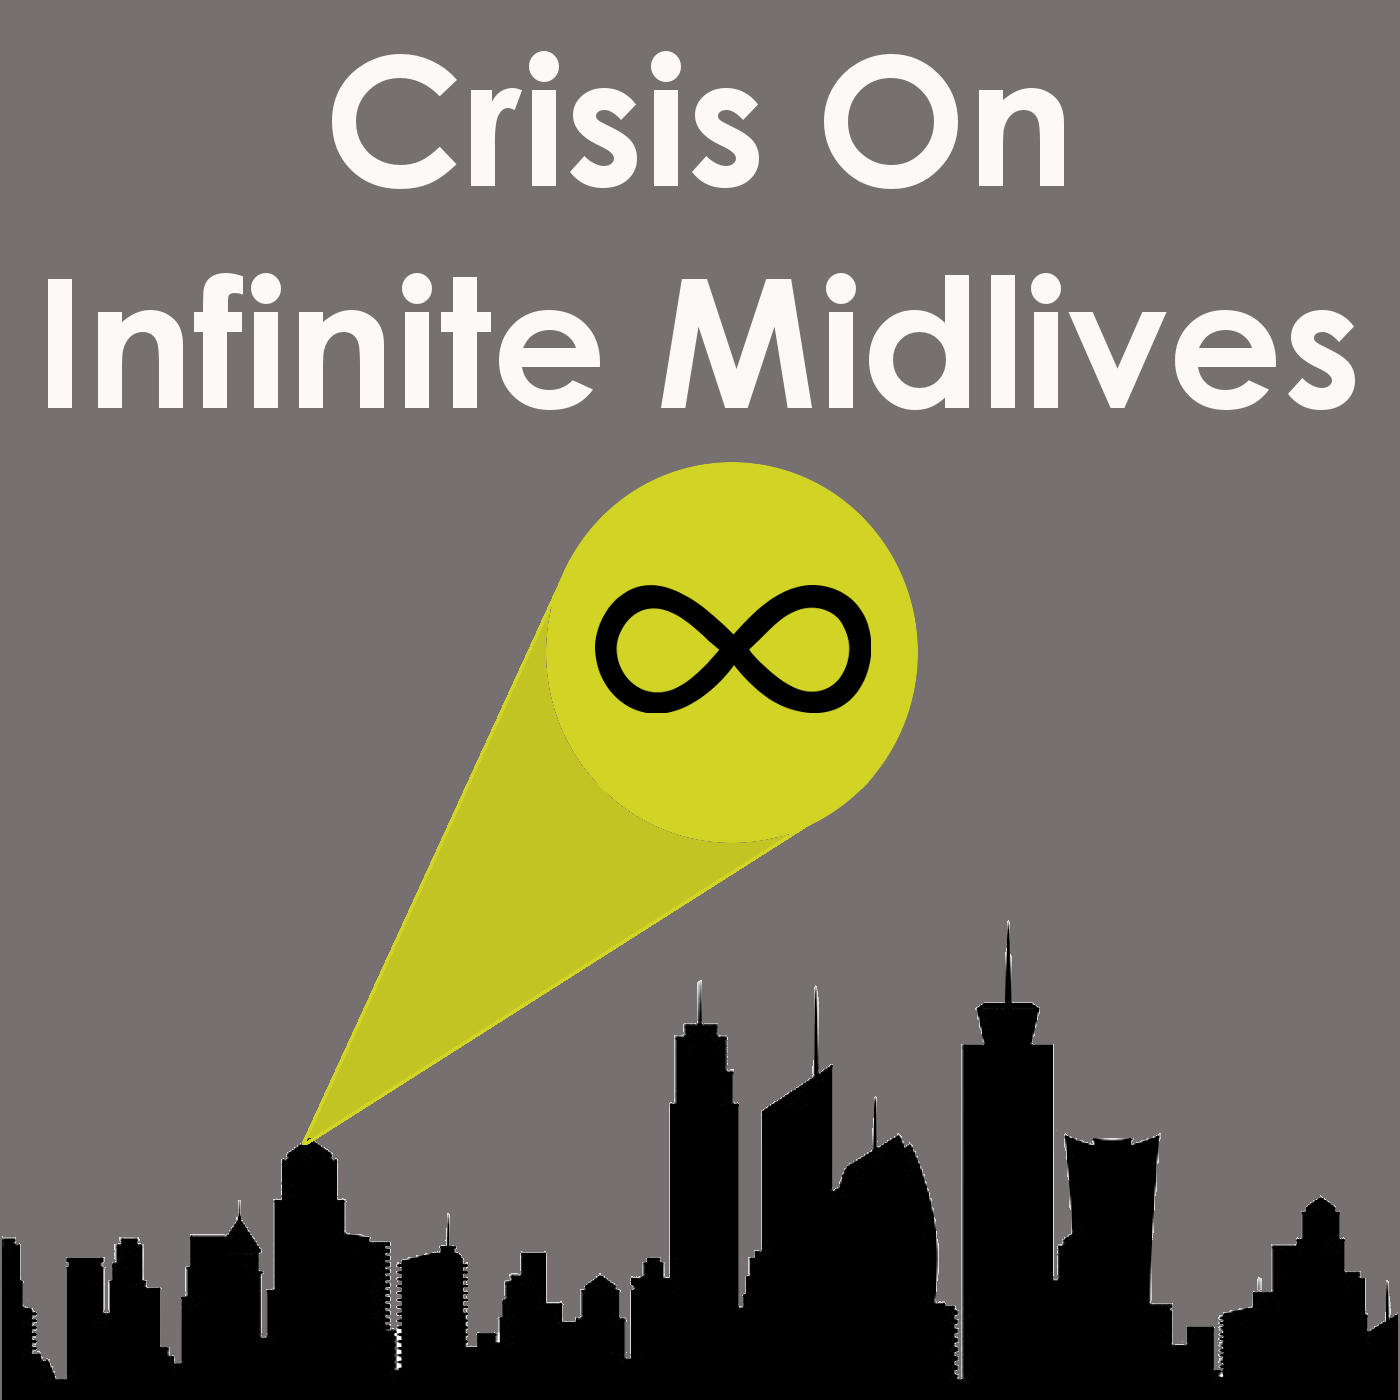 Crisis On Infinite Midlives